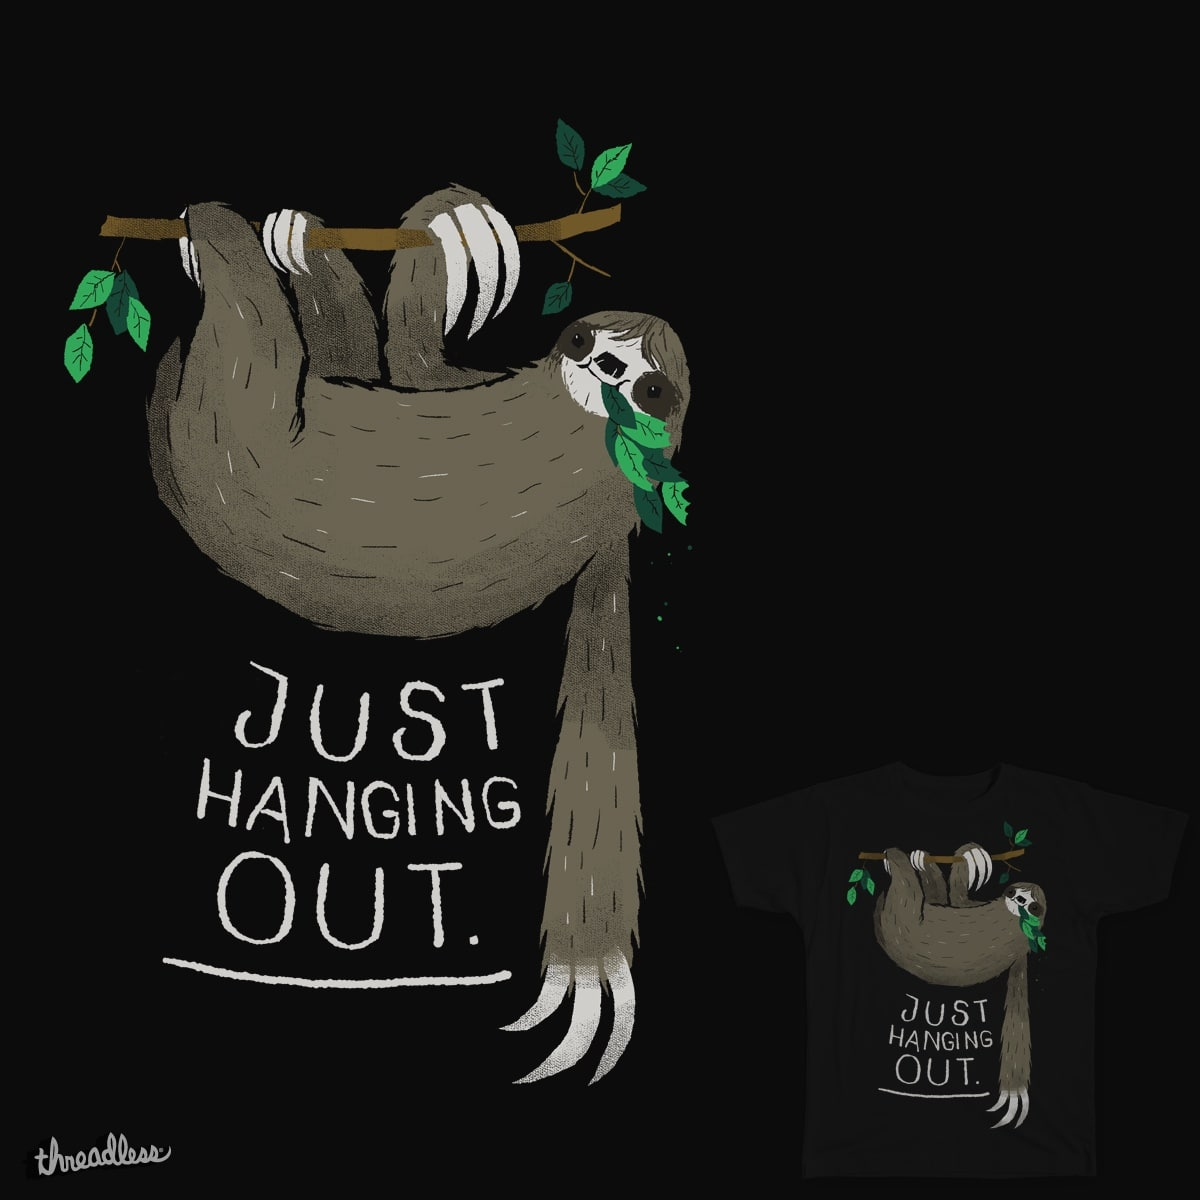 just hanging out by louisroskosch on Threadless